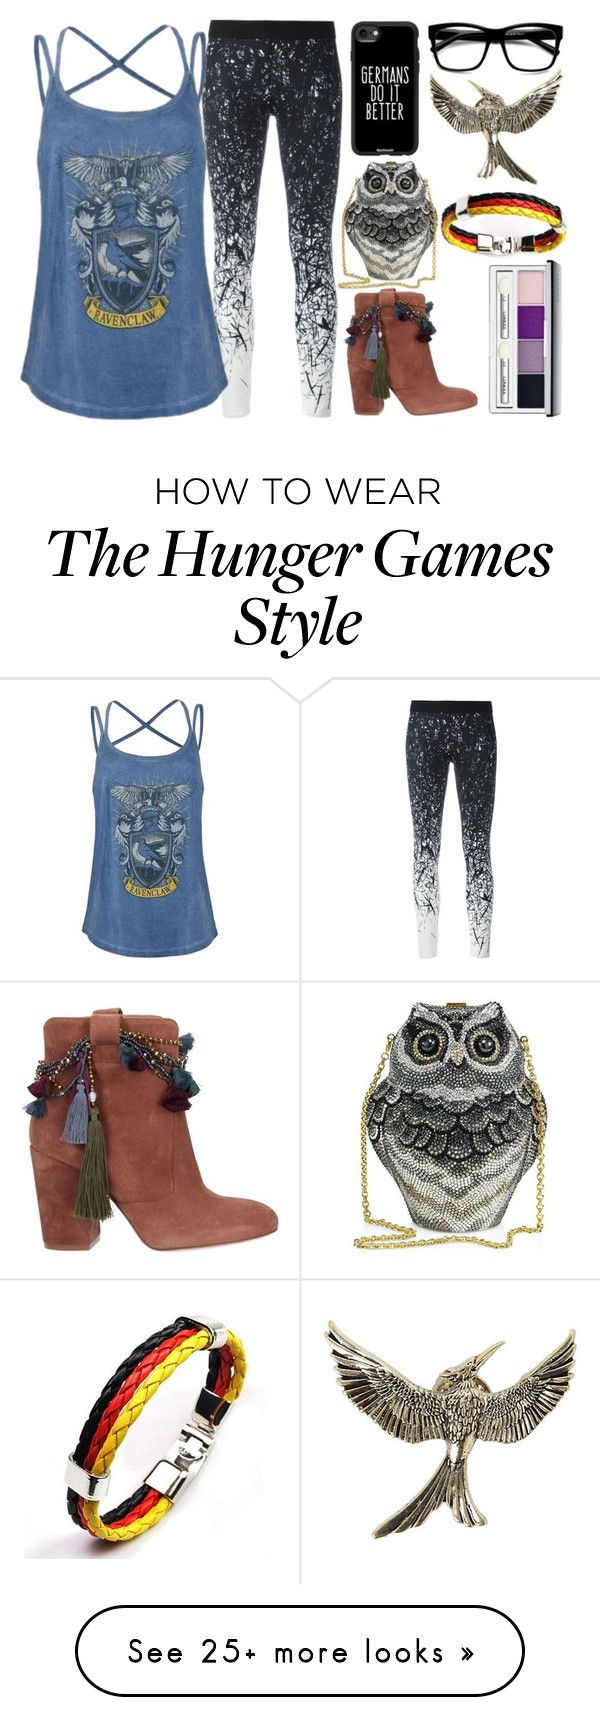 """""""Louisa"""" by lottie2004 on Polyvore featuring Reebok, Casetify, Strategia, Judith Leiber, Hot Topic, Clinique, ravenclaw and germany"""